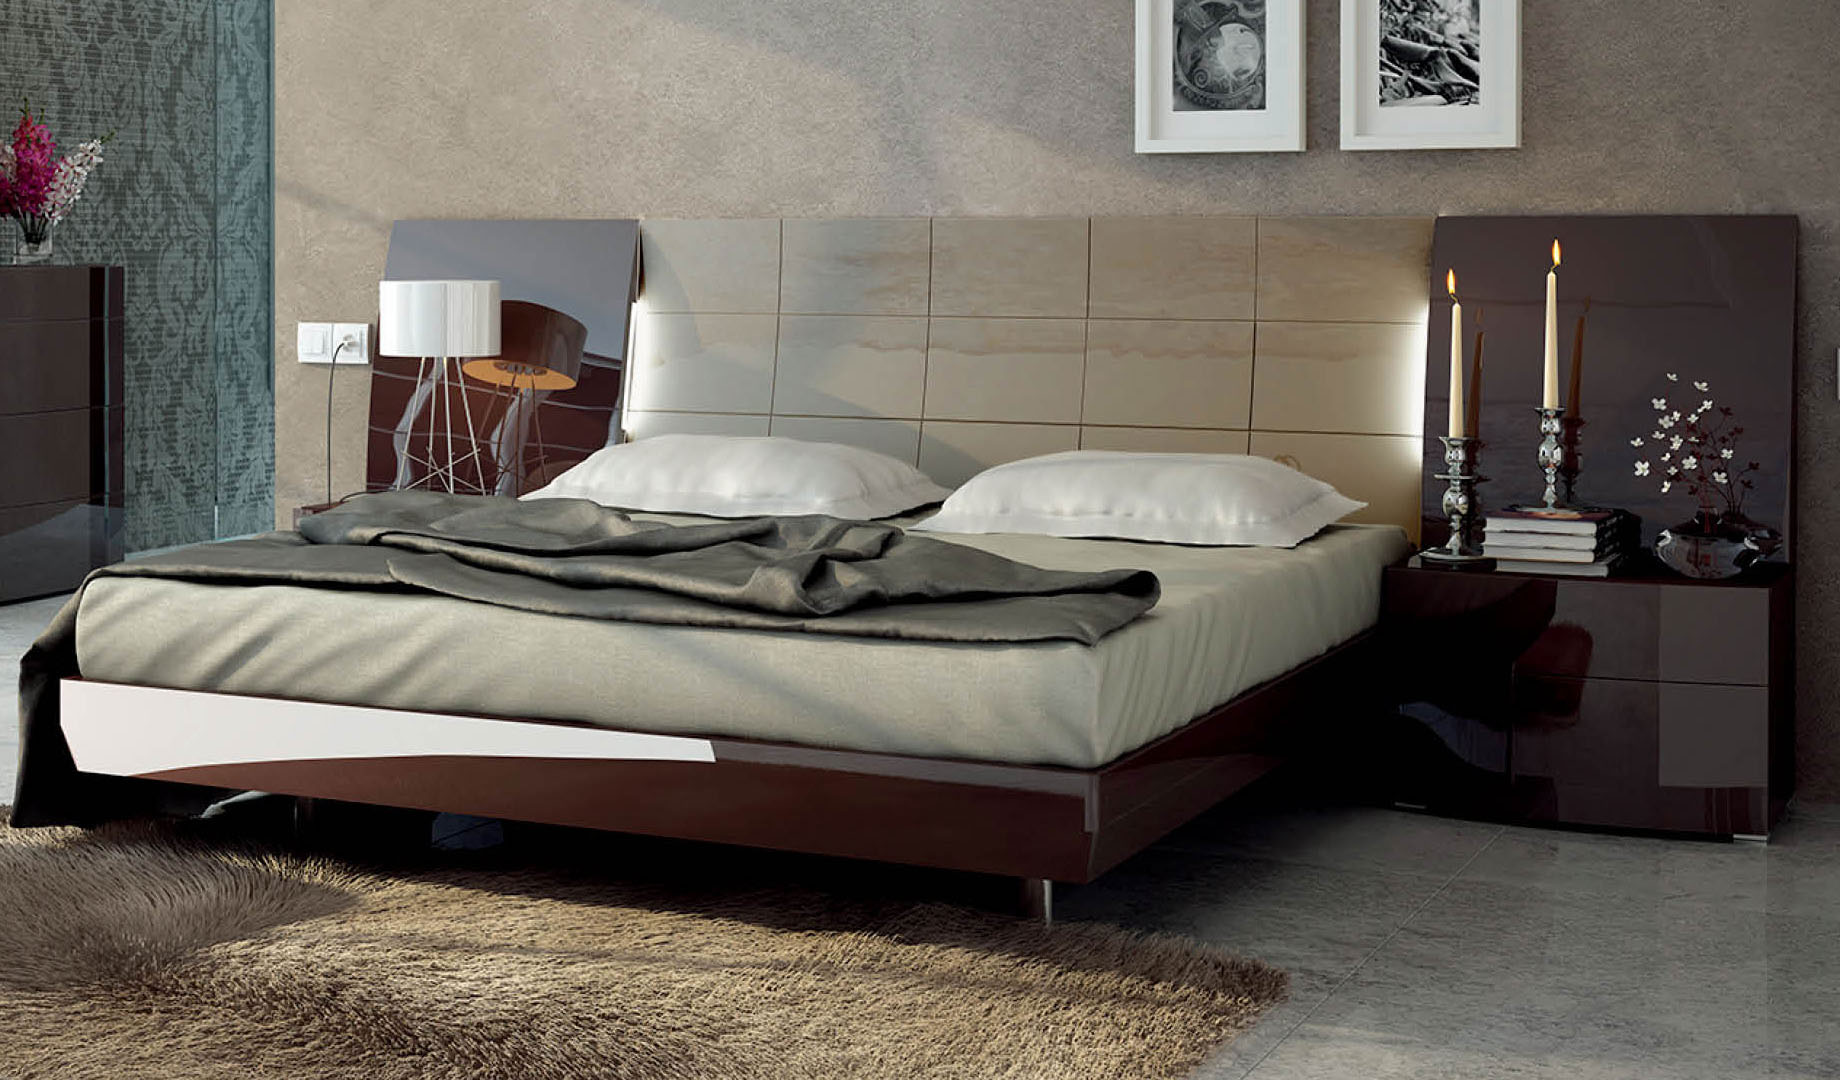 Spain quality luxury platform bed winston salem north Modern platform beds